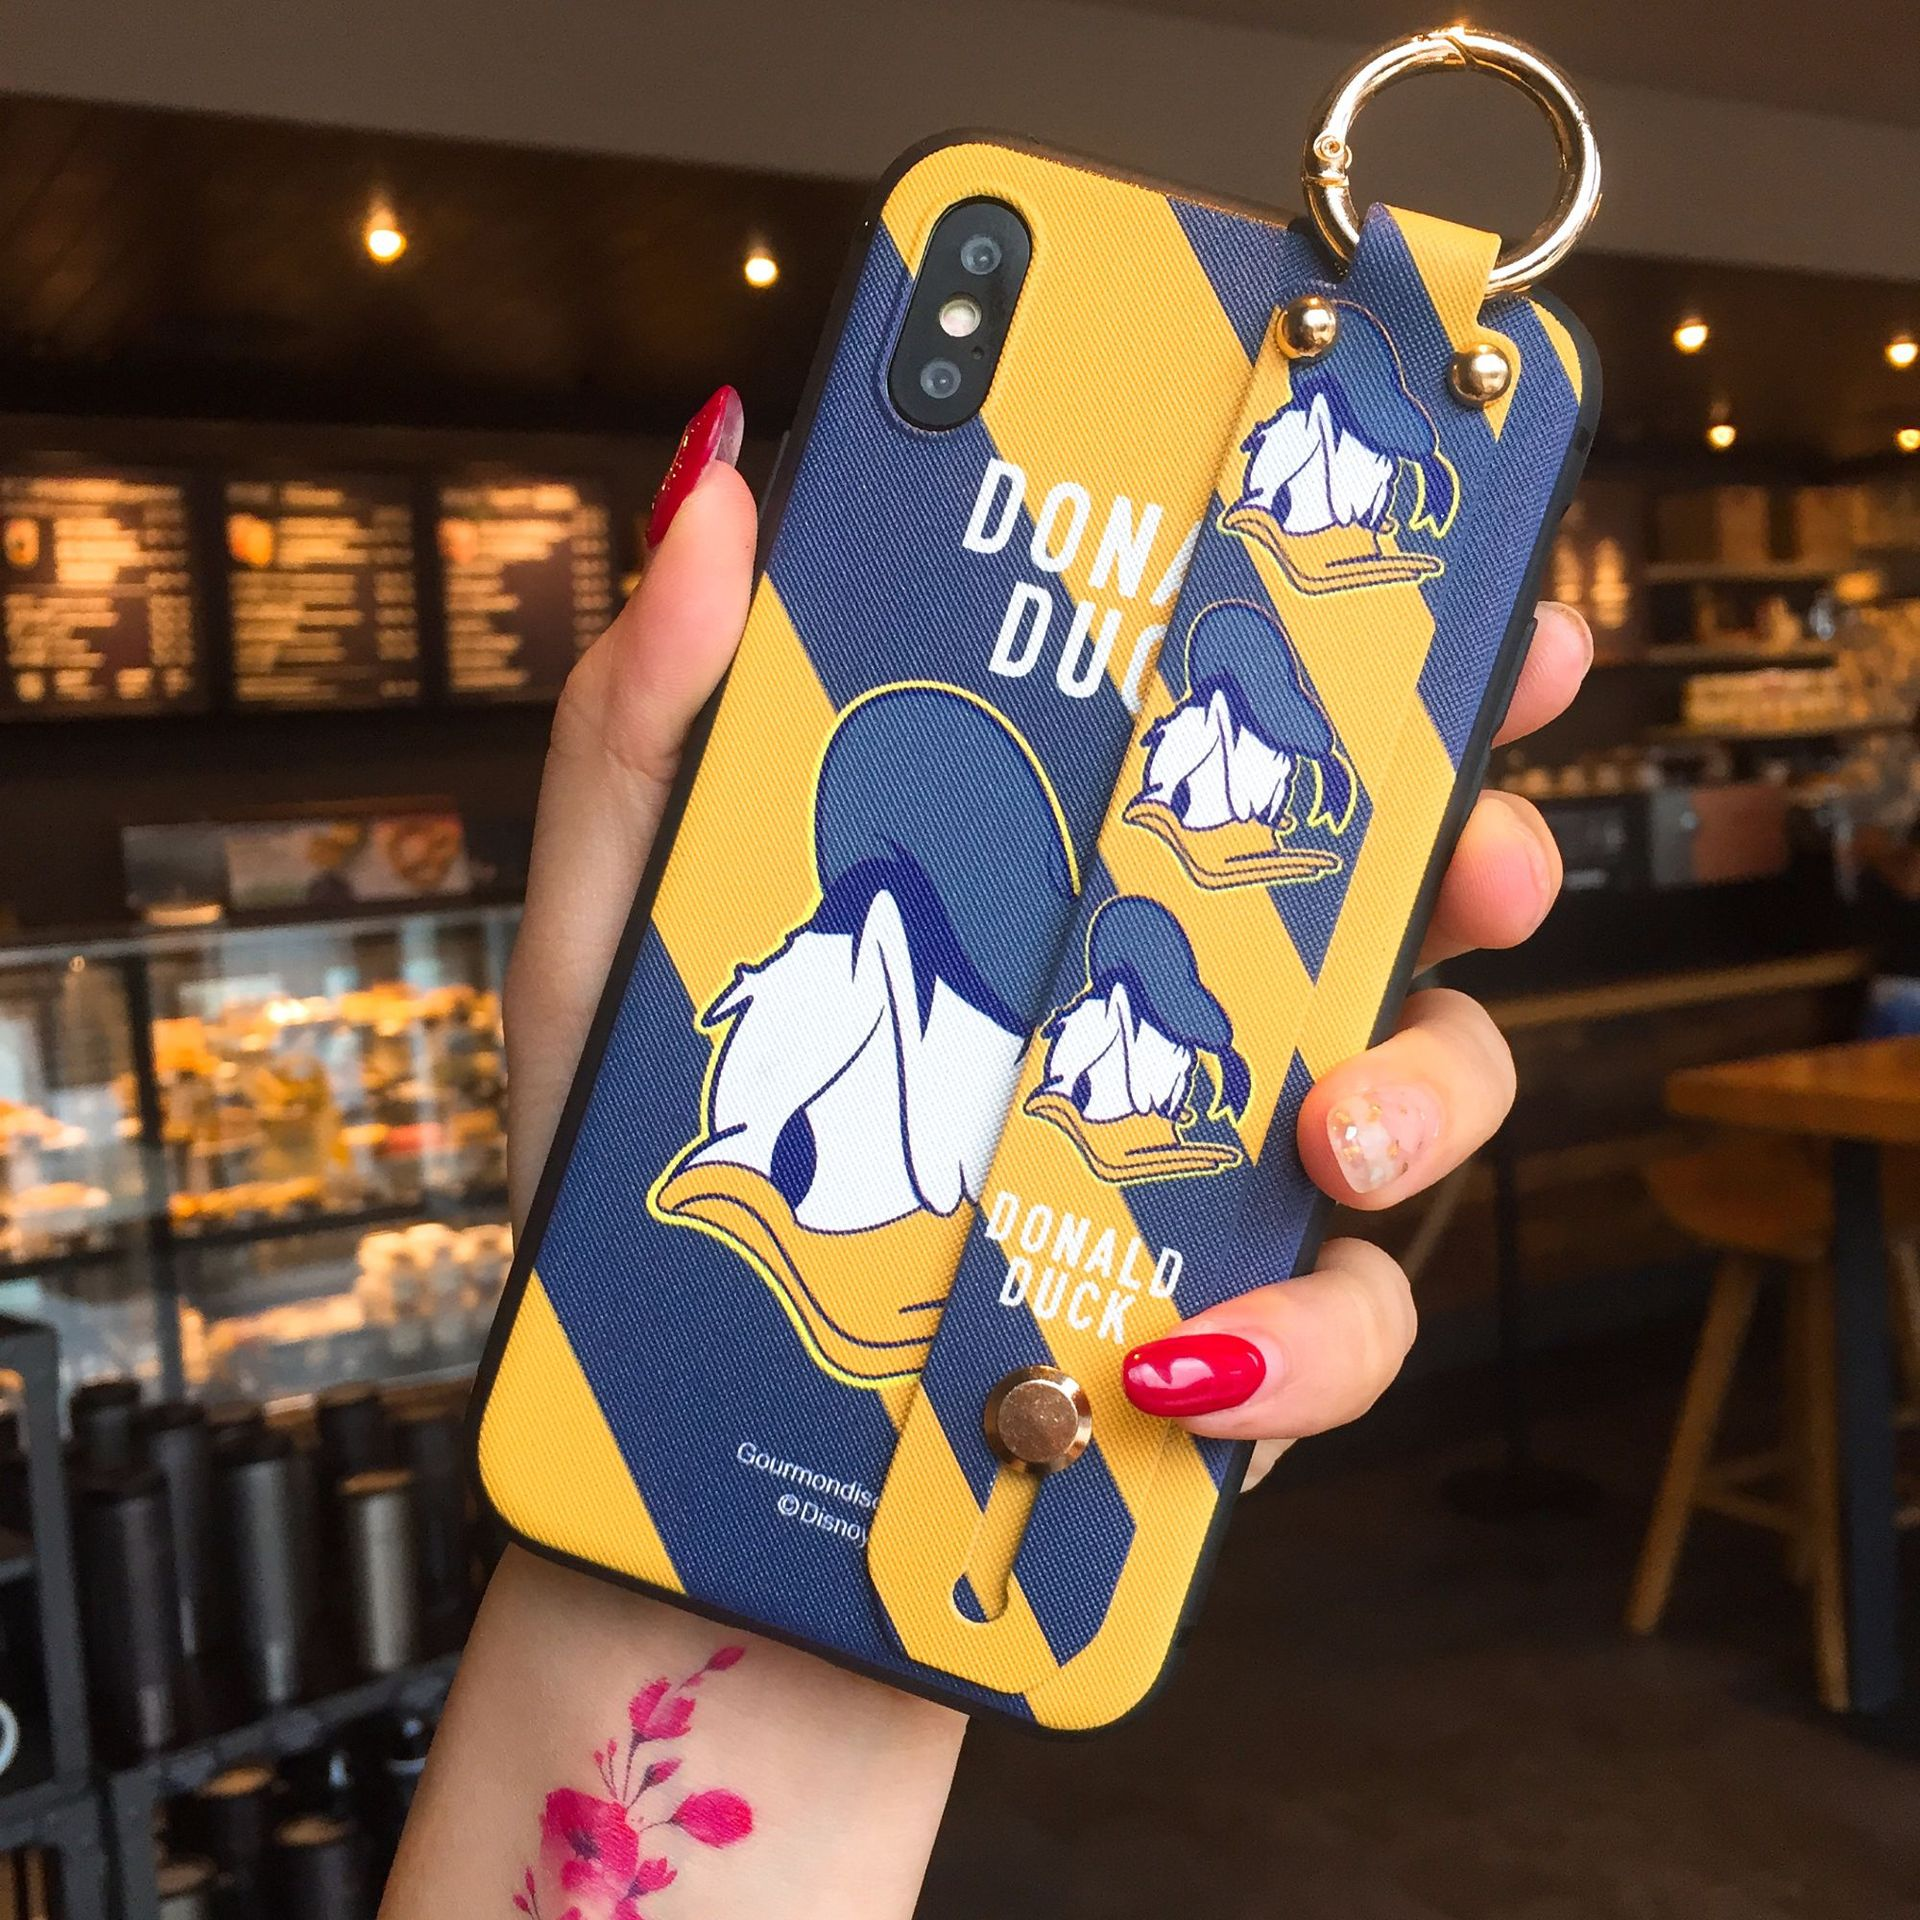 IRONGEER Cartoon Donald Duck Telefon Fall für <font><b>iPhone</b></font> 6S Plus <font><b>7</b></font> 8 Plus weiche abdeckung für <font><b>iPhone</b></font> X XS MAX Armband Coque image